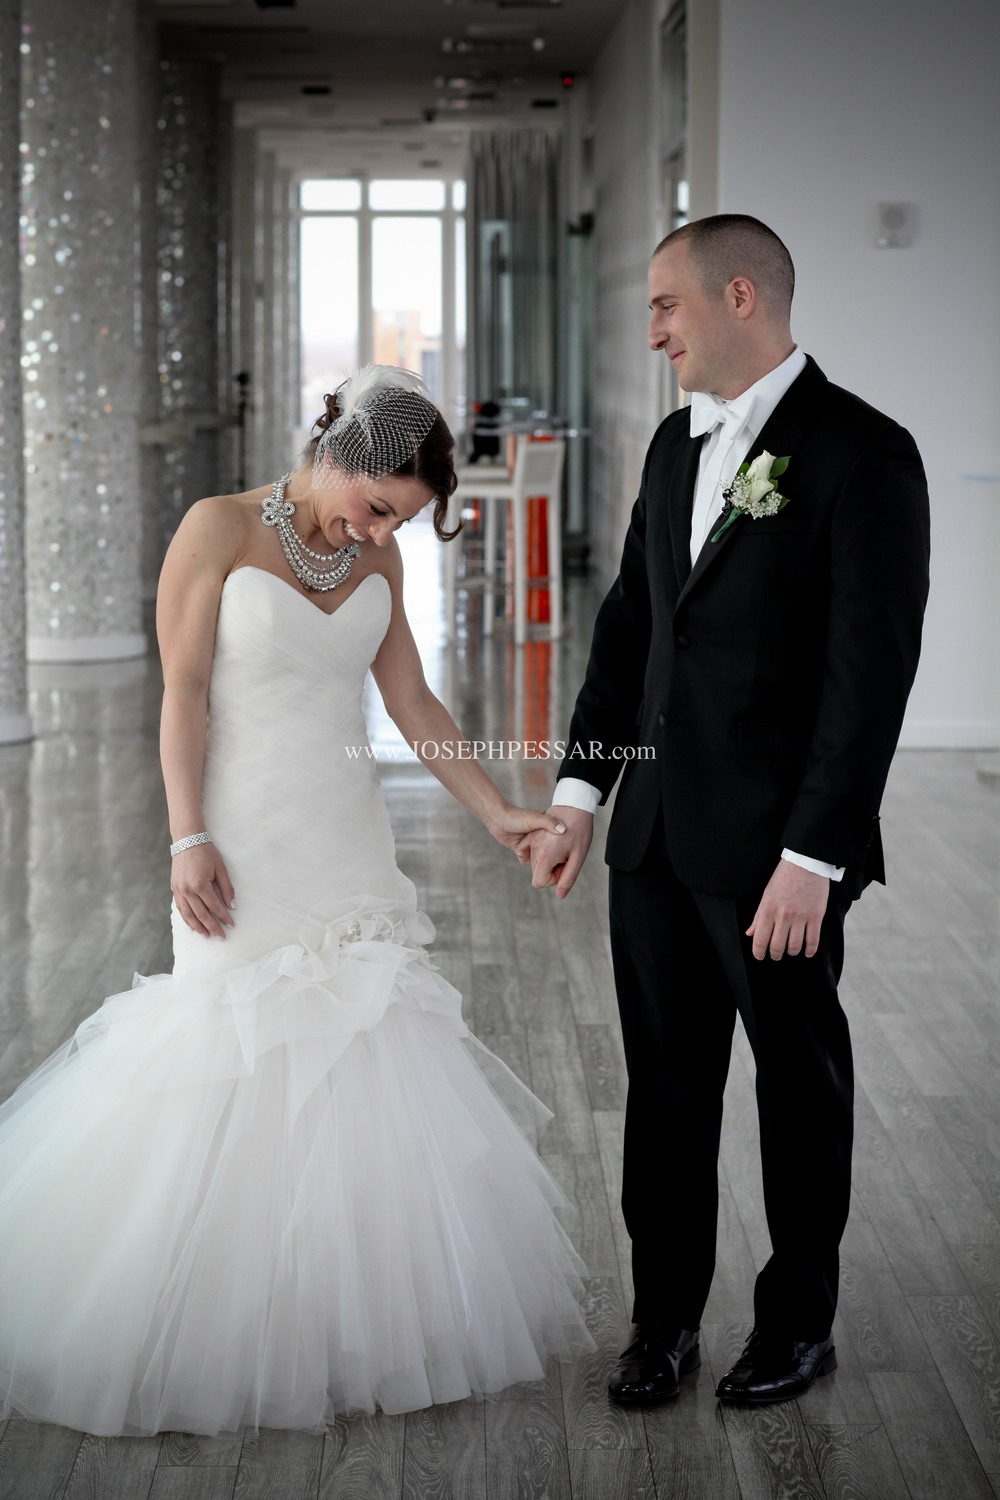 nyc_wedding_photographer0015.jpg